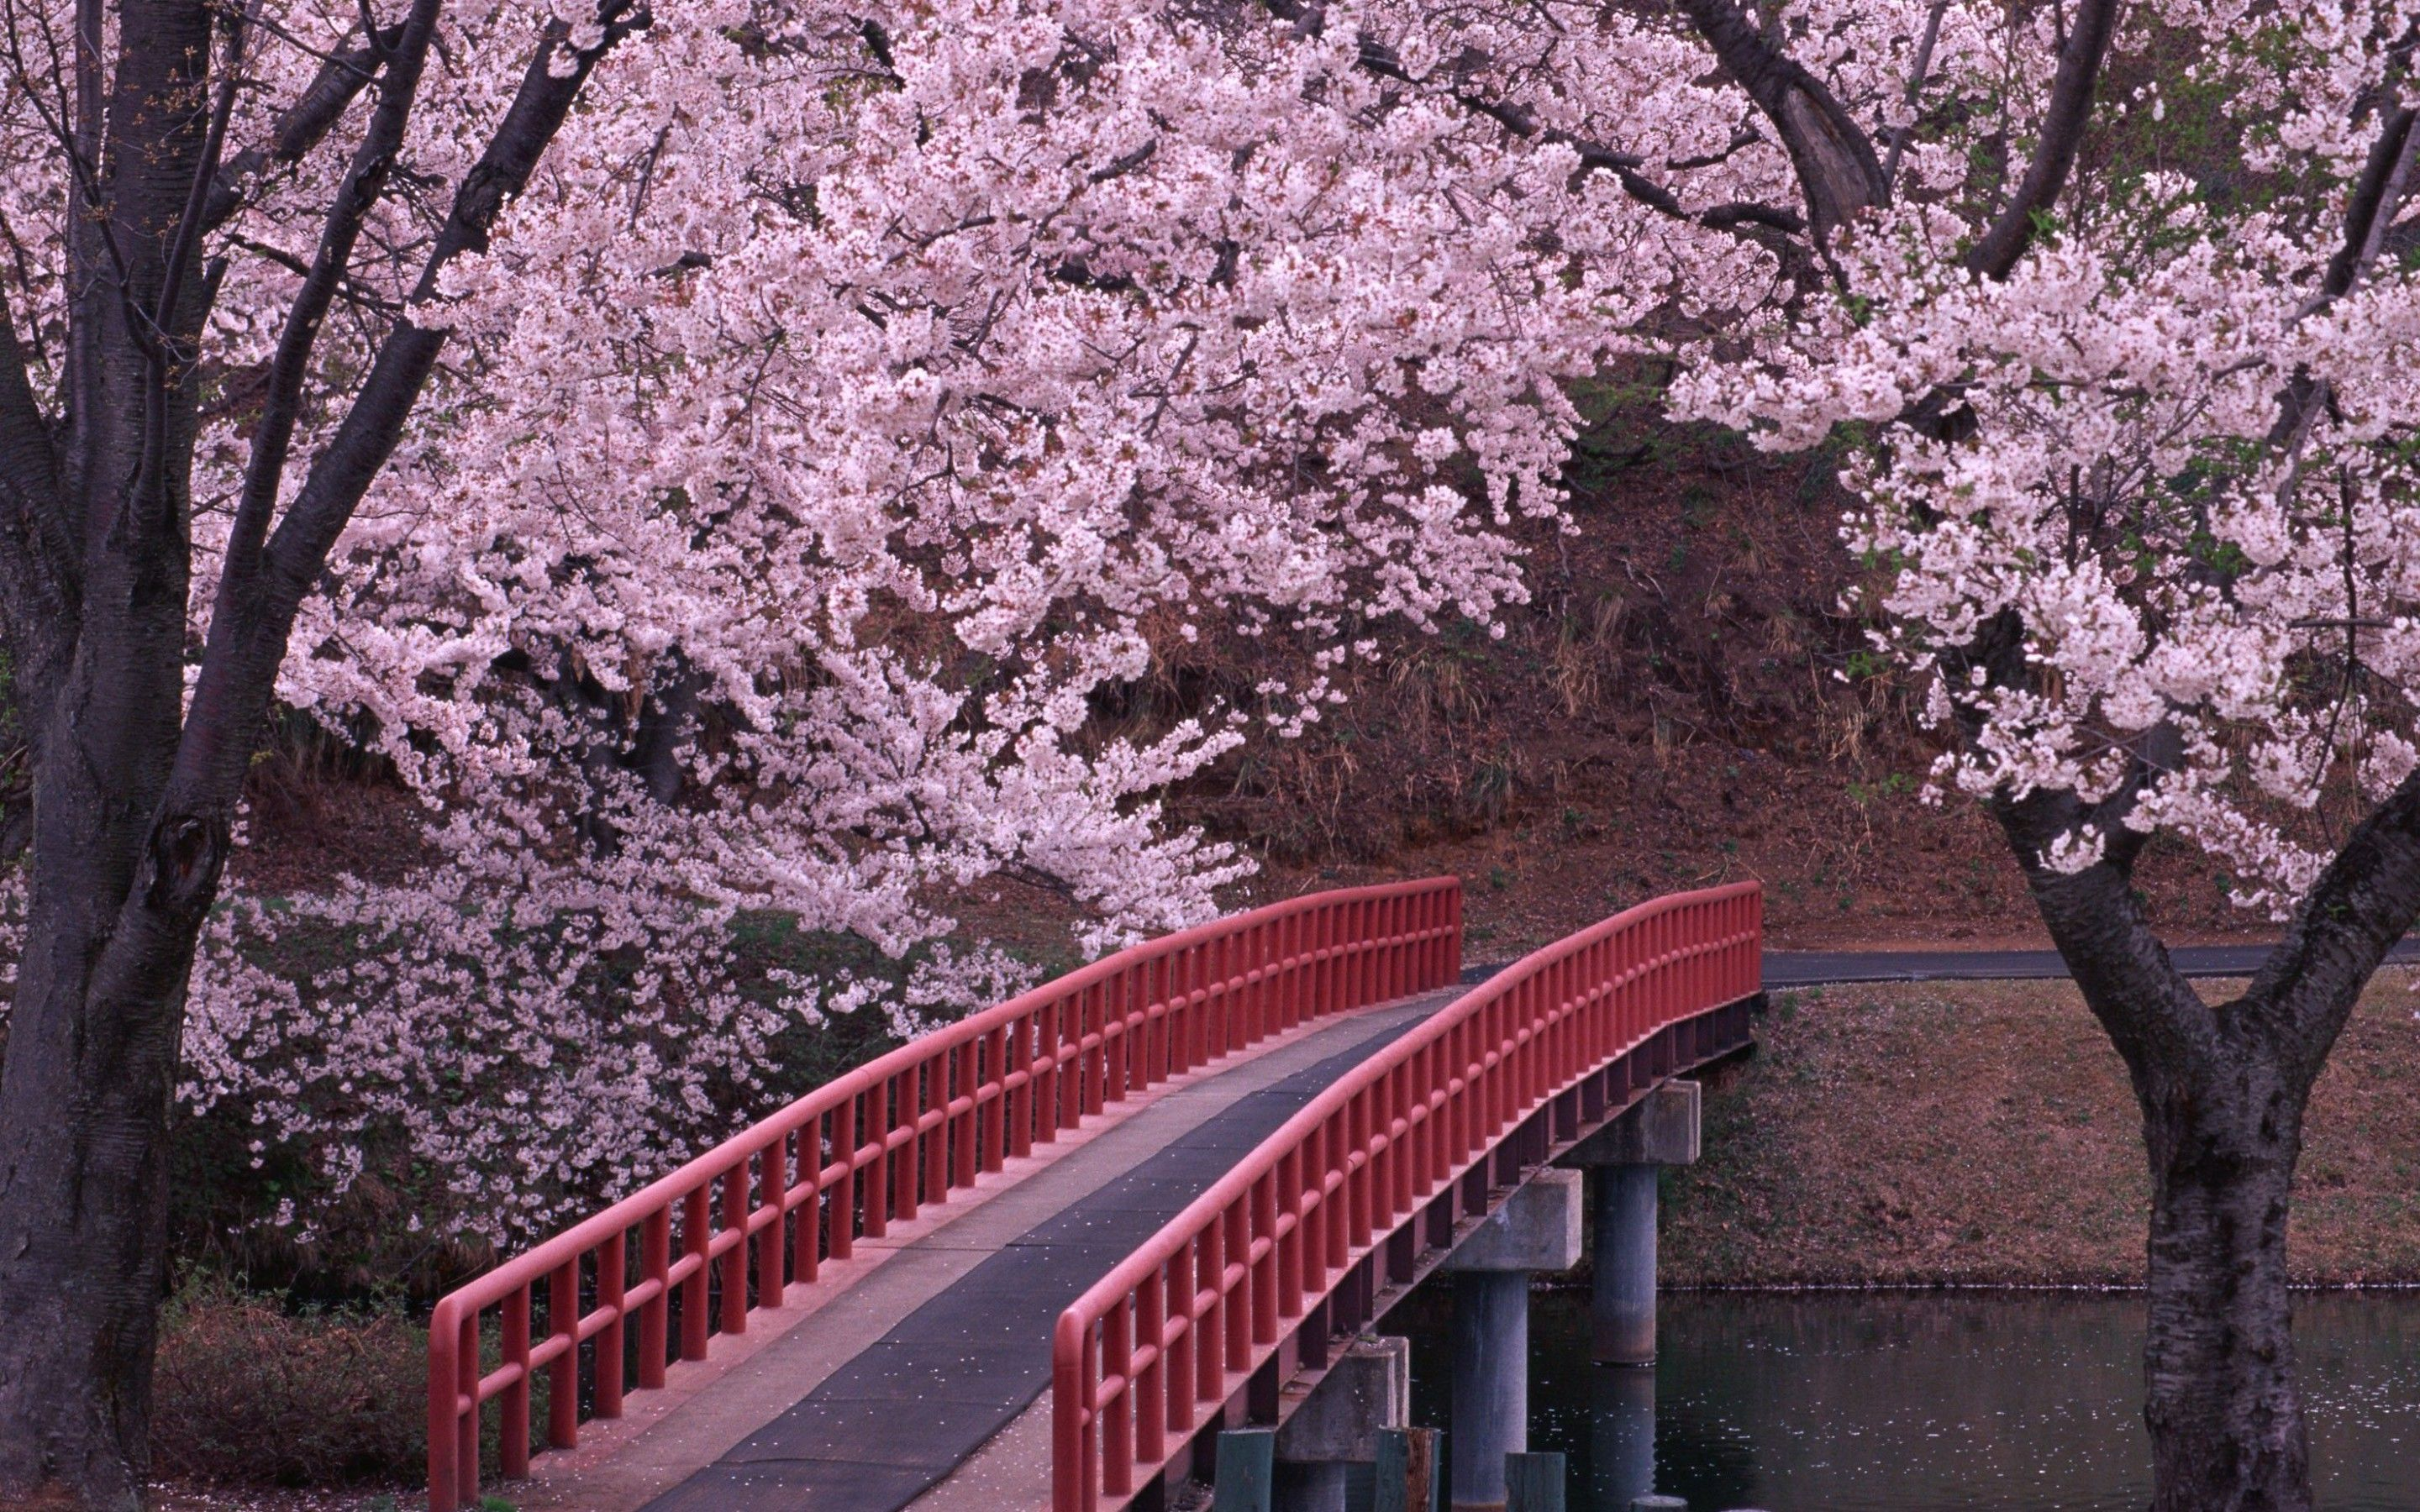 landscapes cherry blossoms flowers bridges fresh new hd wallpaper - Japanese Garden Cherry Blossom Bridge